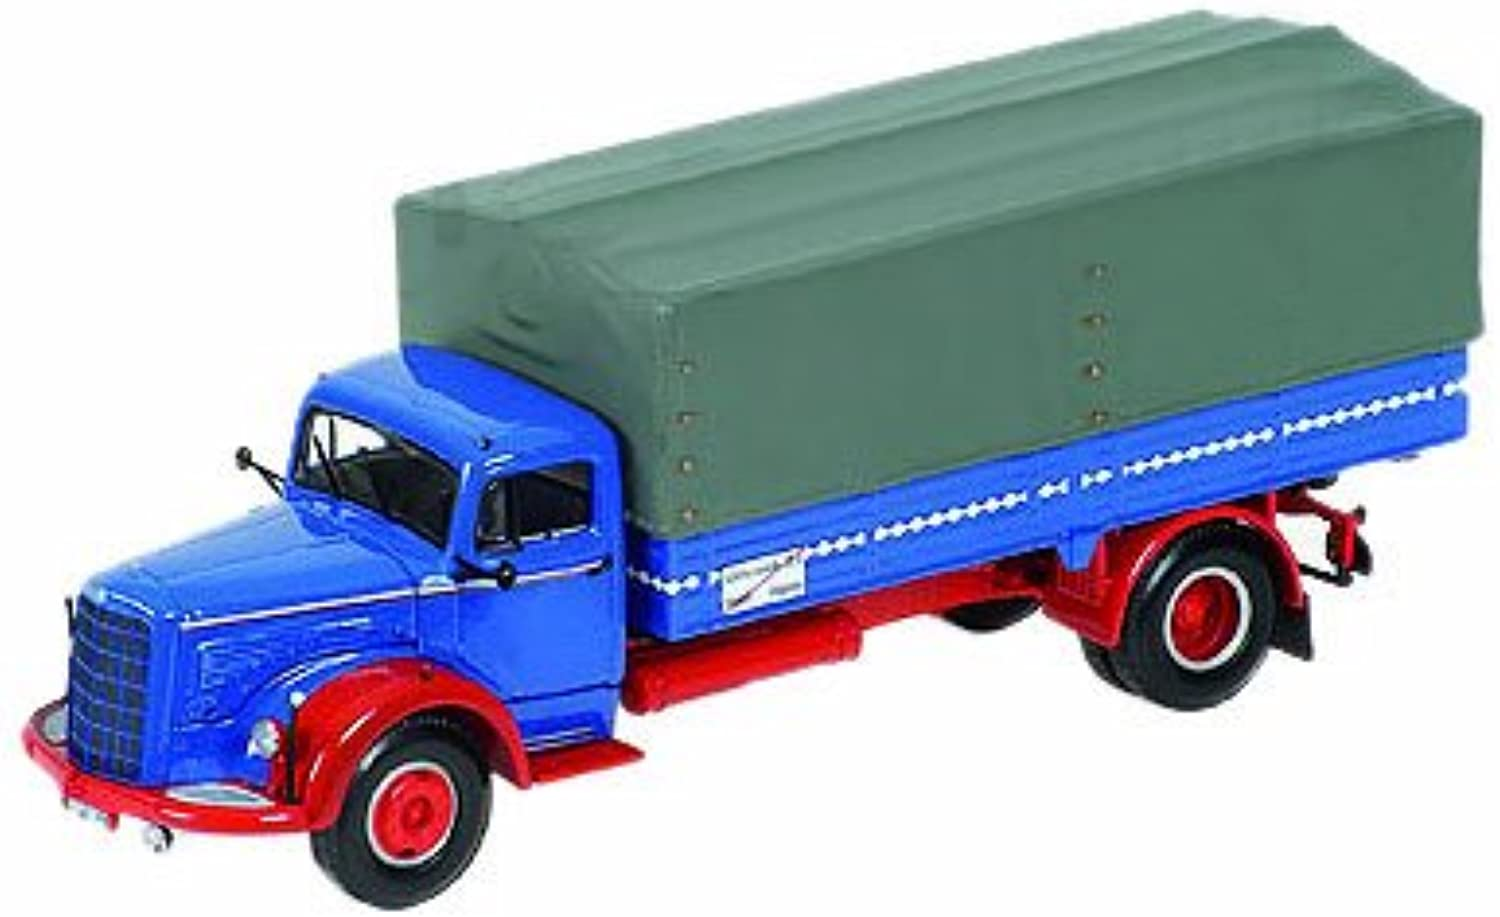 Minichamps 439034420 Model Lorry  Mercedes L315 Prische 1954  1 43 Scale  Red bluee